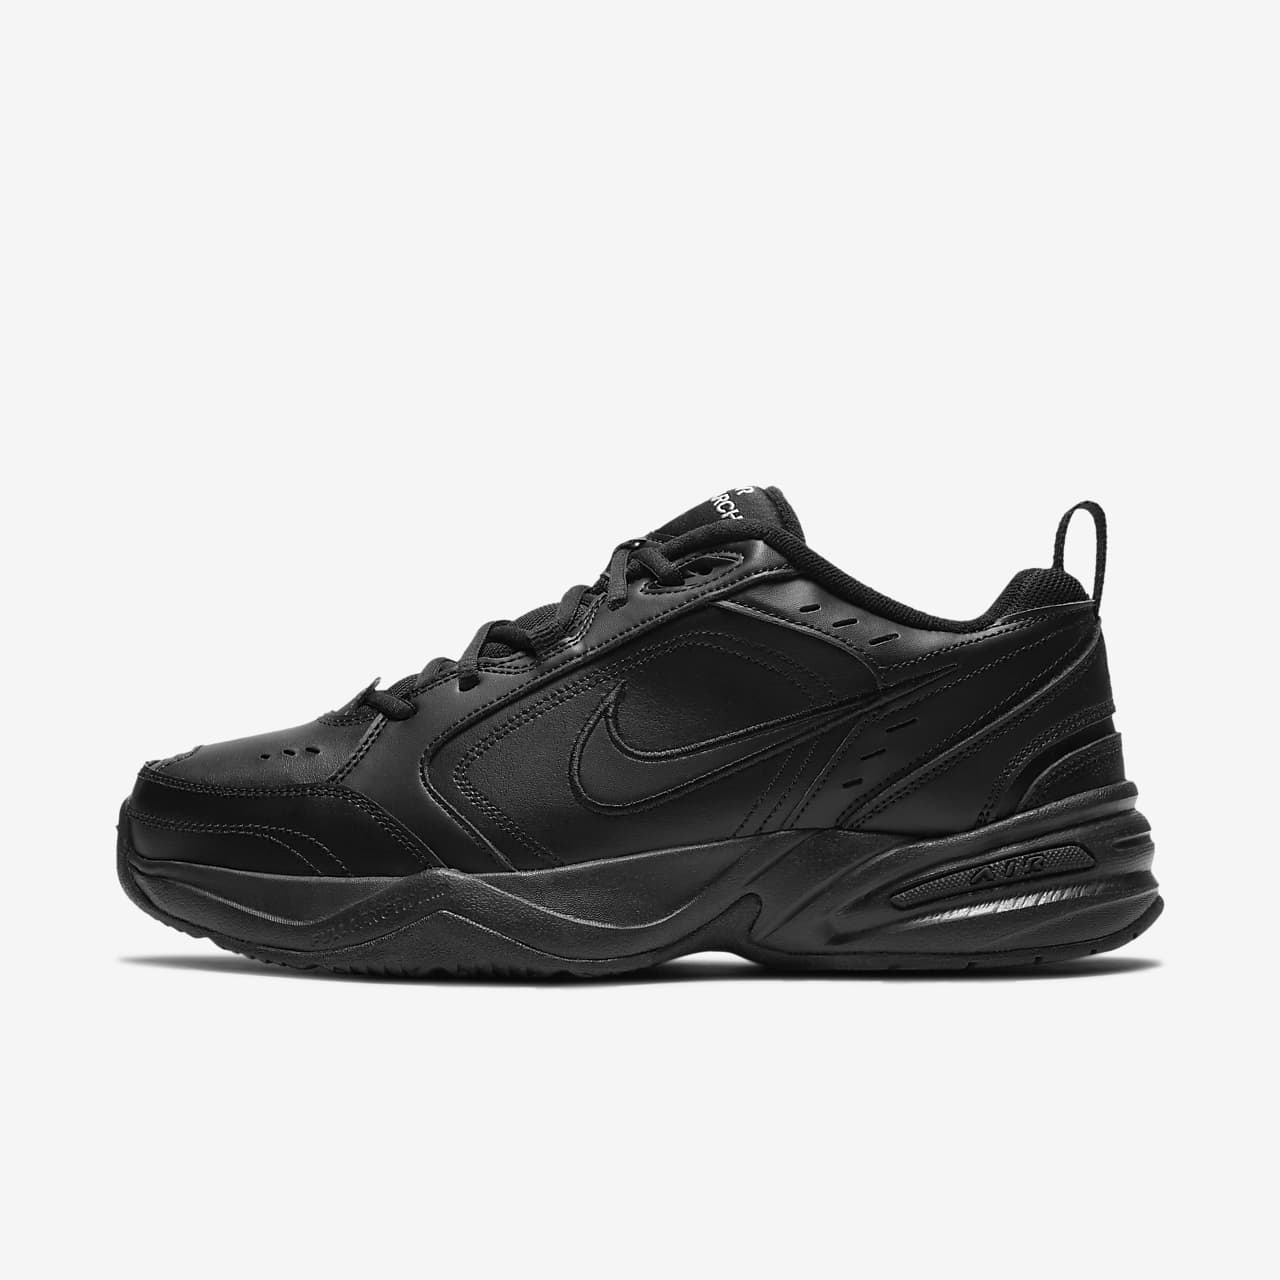 Nike Air Monarch IV Zapatillas de lifestyle y para el gimnasio